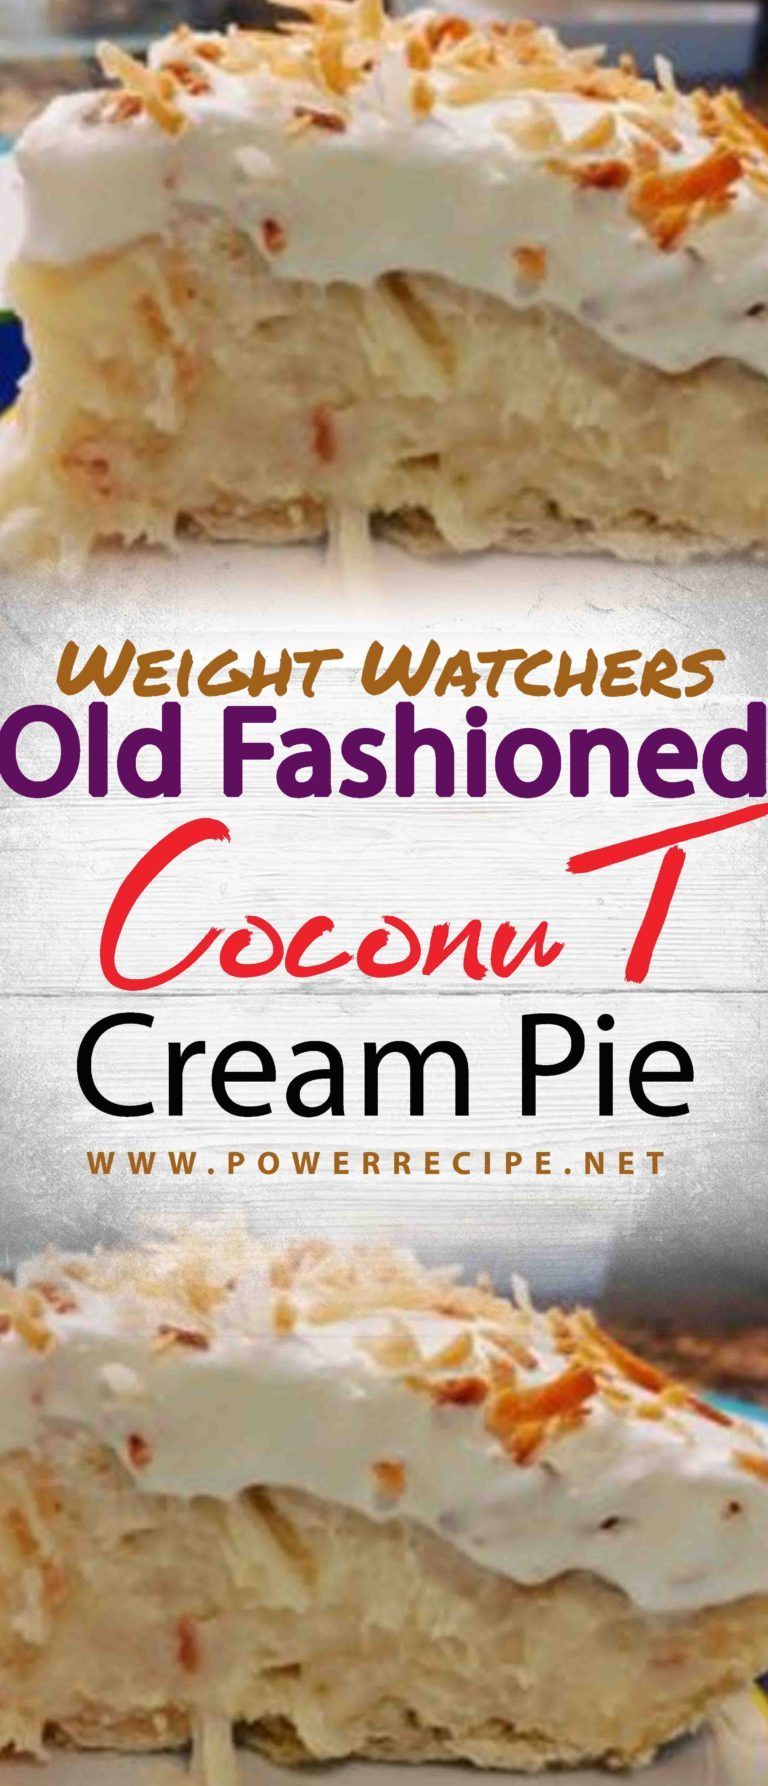 Preheat The Oven To 350 Degrees F Or 175 Degrees Celsius Toast Coconut It Is Recommended To Toast Your Cocoa Before Coconut Cream Pie Cream Pie Coconut Cream